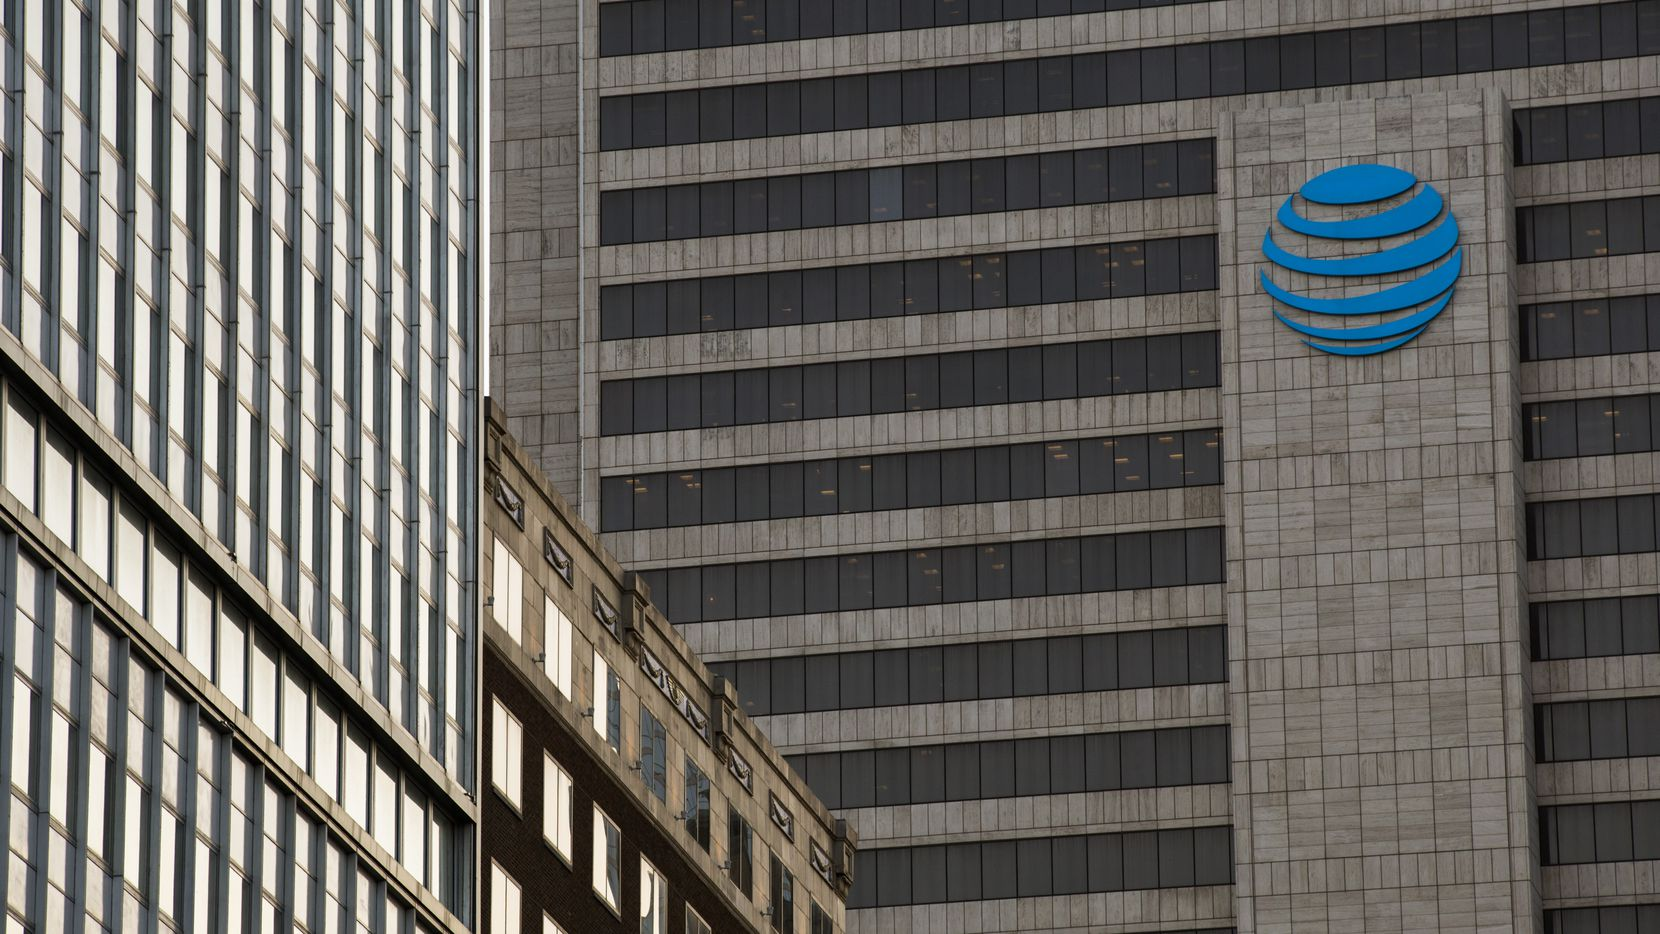 Dallas-based AT&T has been the target of activist investor, Elliott Management. The New York-based investor has called for AT&T to sell off some of its assets, including DirecTV.